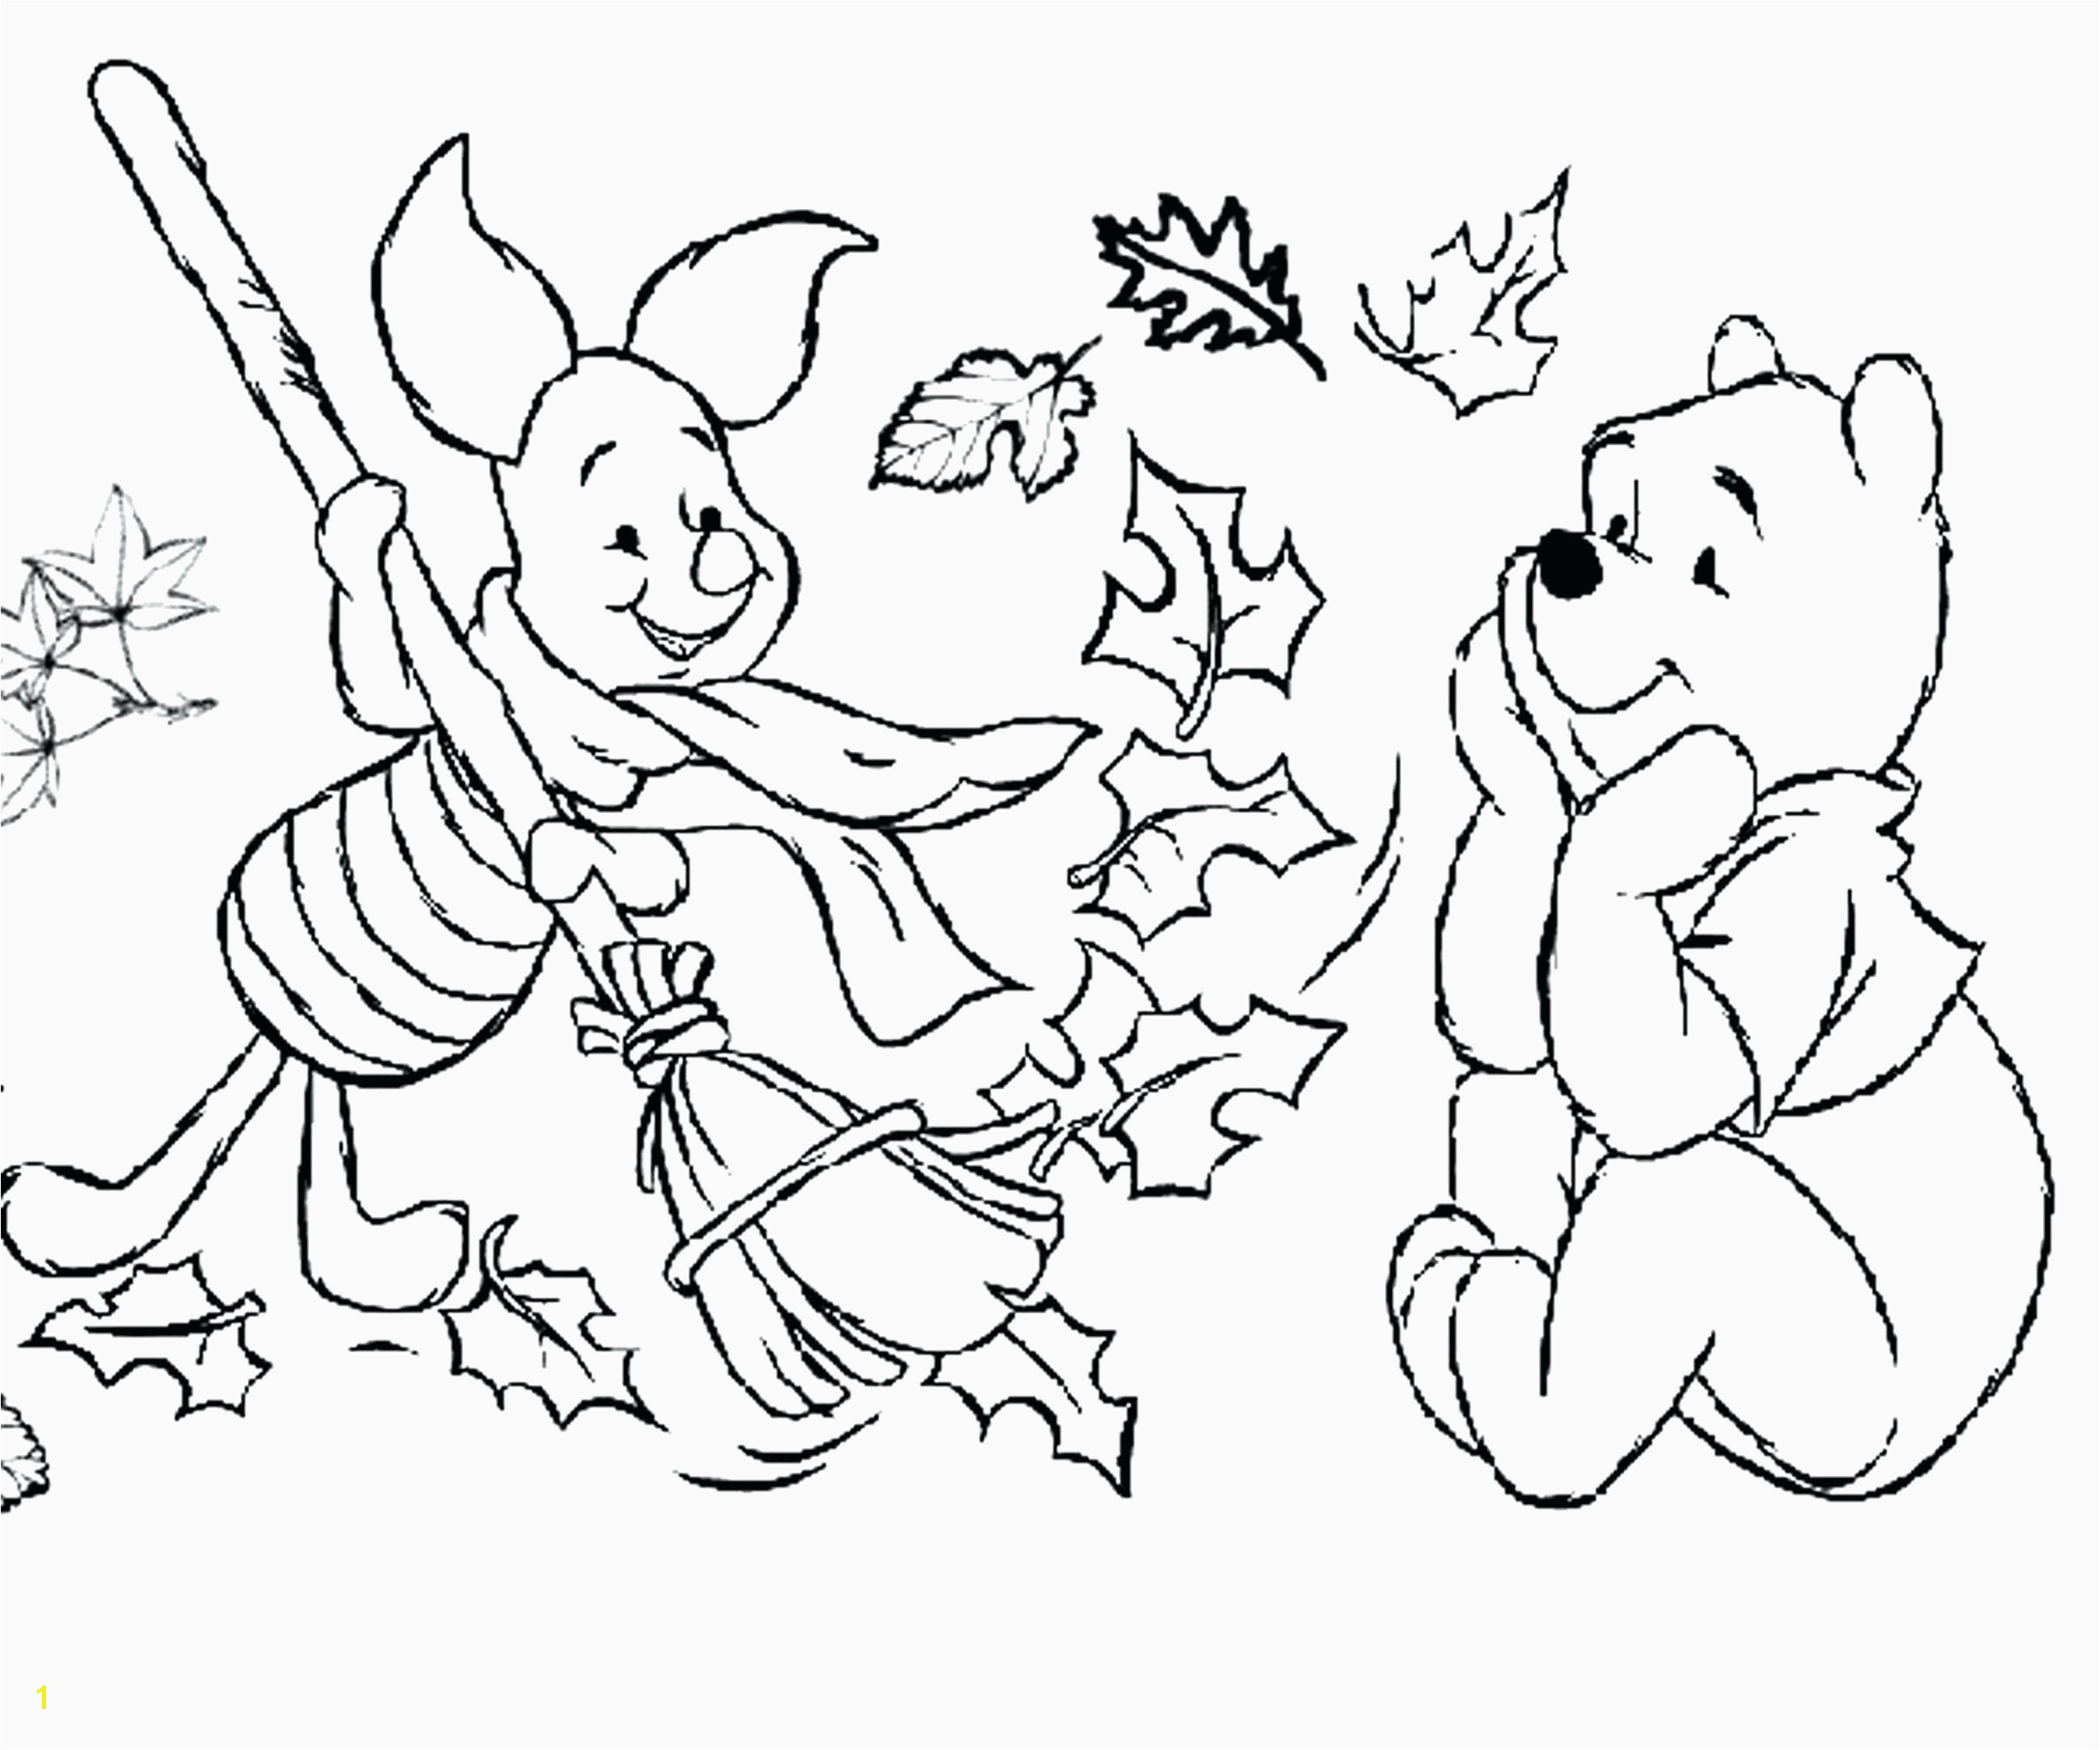 Www.coloring-pages-kids.com Www Coloring Pages for Kids Unique Coloring Pages for Fall